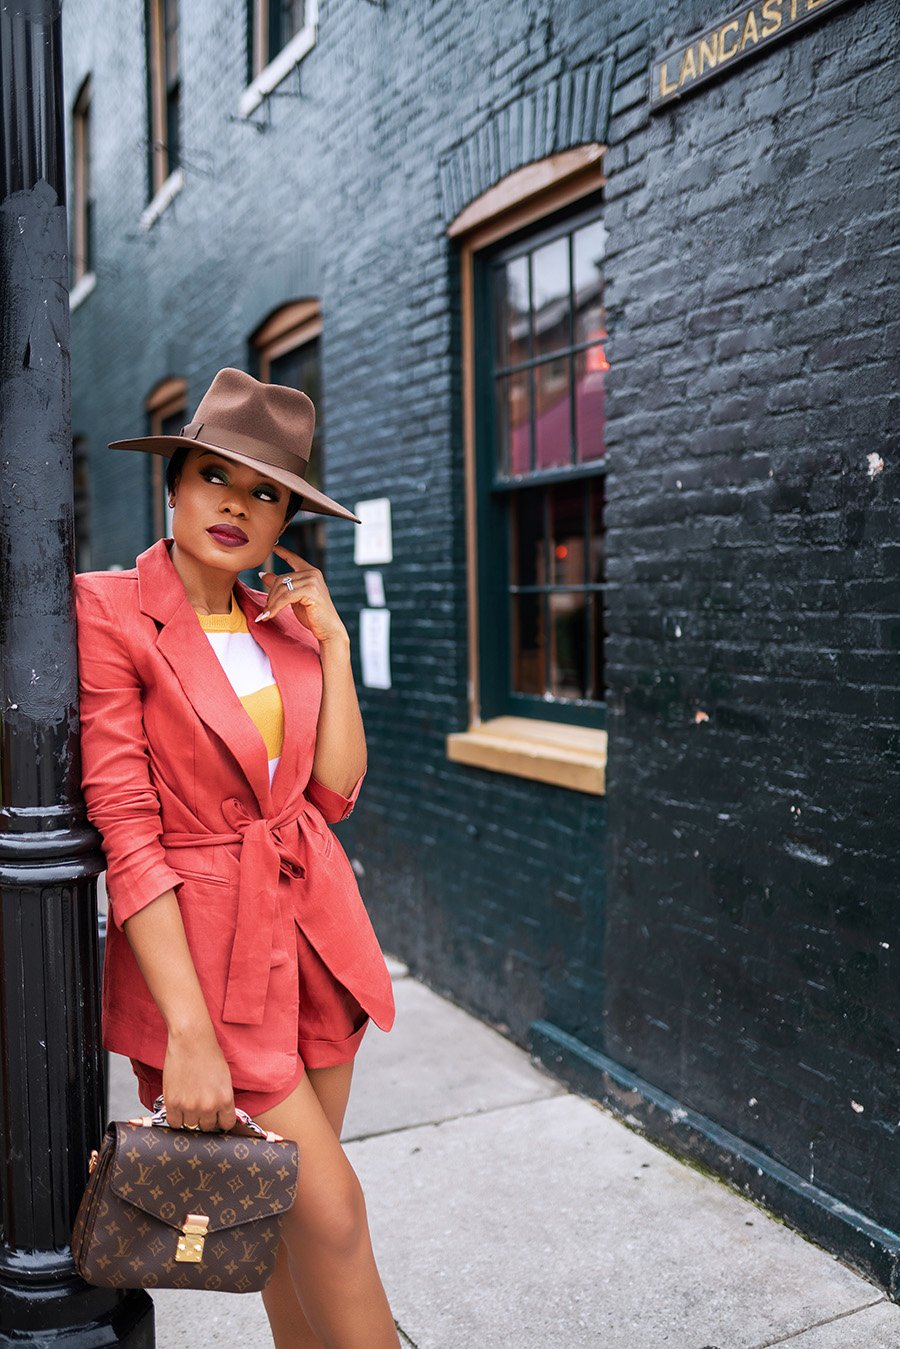 stella-adewunmi-of-jadore-fashion-blog-shares-The-Best-Shorts-and-Blazer-Suit-Set-For-Fall